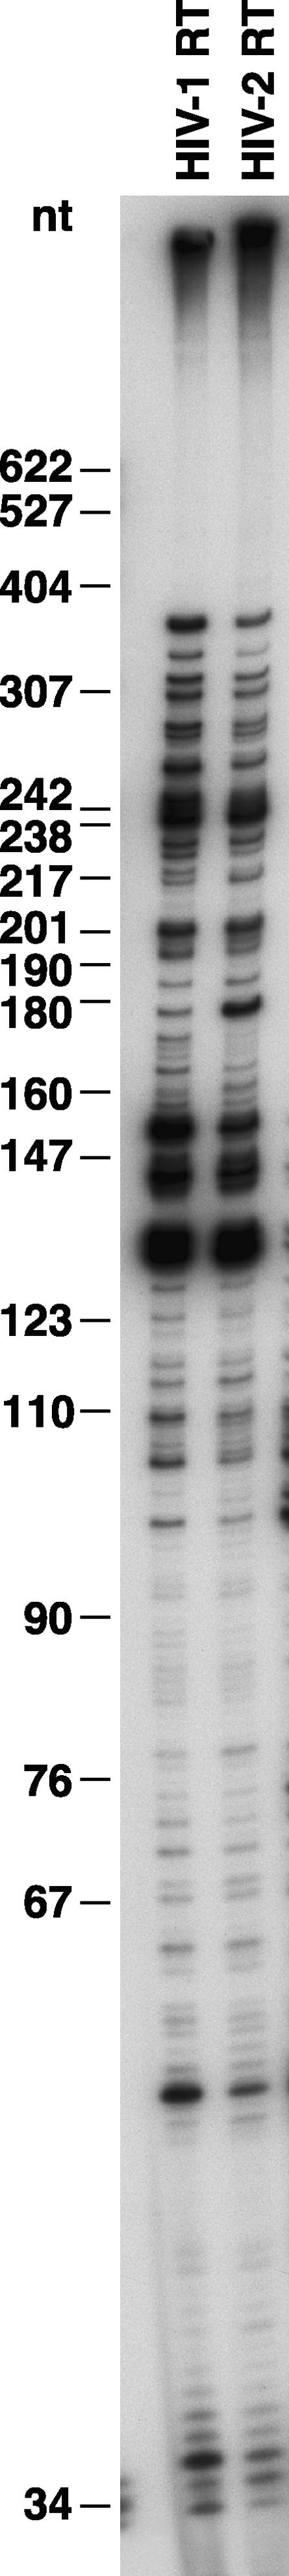 """Processivity of Wild-Type HIV-1 and HIV-2 RTs As described in Materials and Methods, a 5′ end-labeled primer was annealed to single-strand M13mp18 DNA, then extended with wild-type HIV-1 RT or HIV-2 RT in the presence of 10.0 μM of each dNTP and unlabeled poly(rC)•oligo(dG), which acts as a """"cold trap."""" The cold trap limits extension to one round of polymerization. The location of the size marker bands (in nucleotides) are shown on the left."""